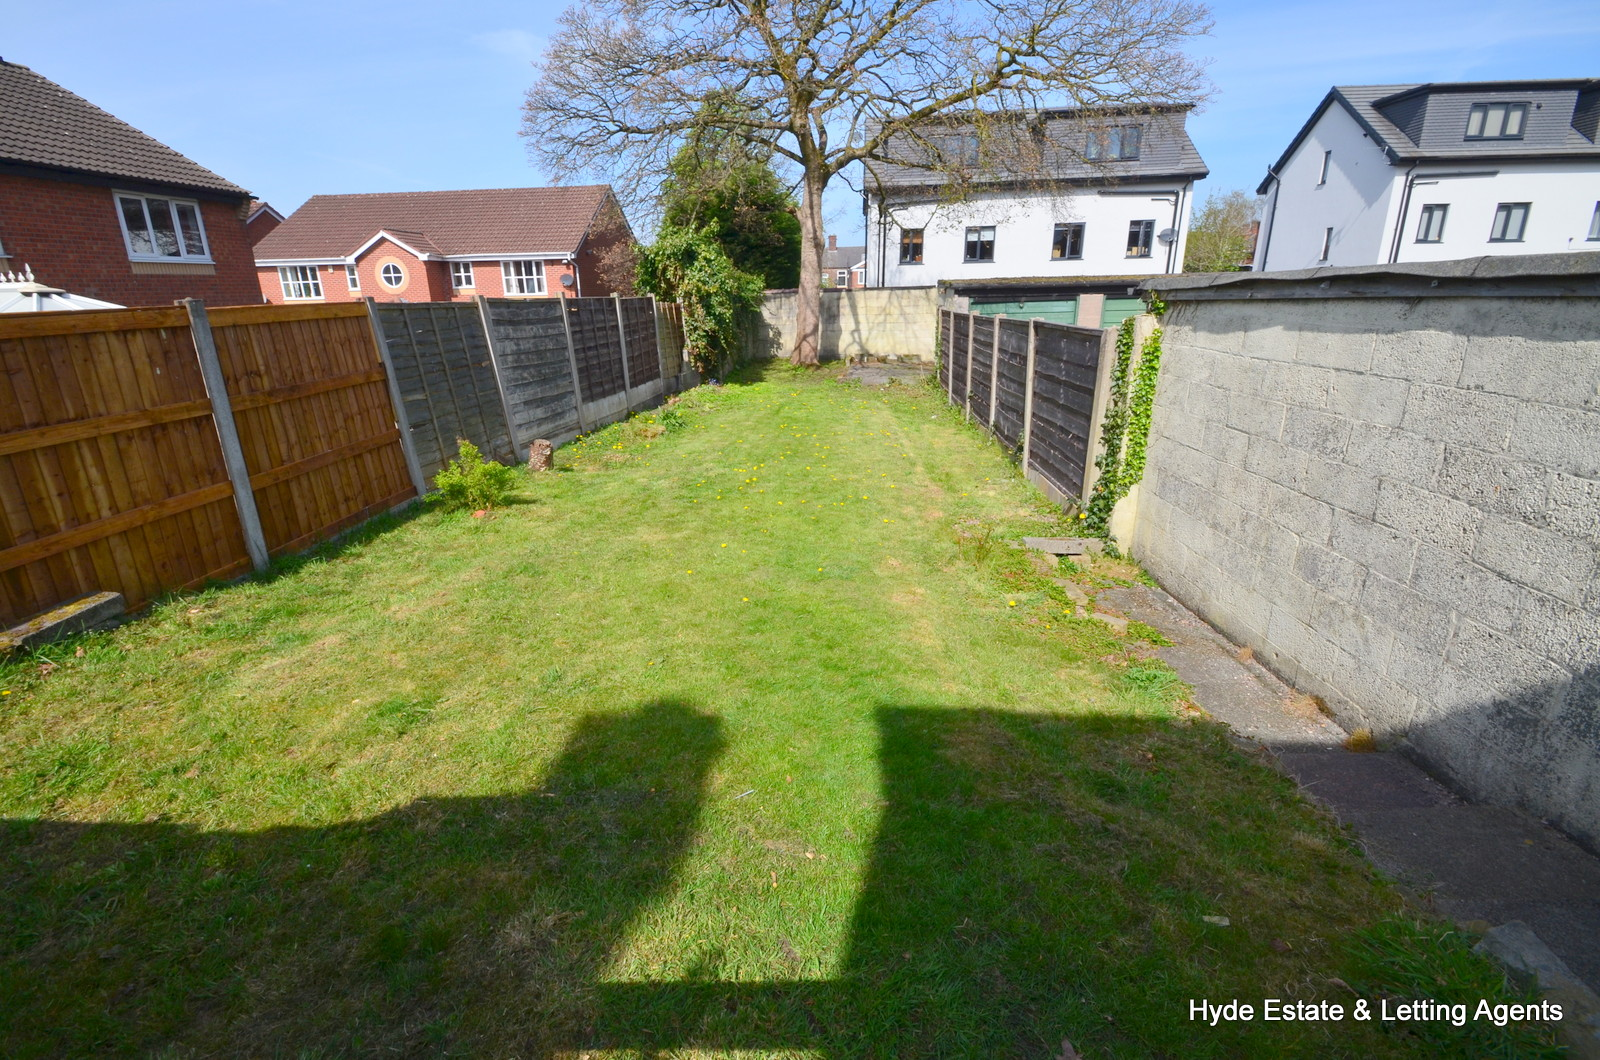 Images for Kenyon Lane, Prestwich, Manchester, M25 1HY EAID: BID:hyde